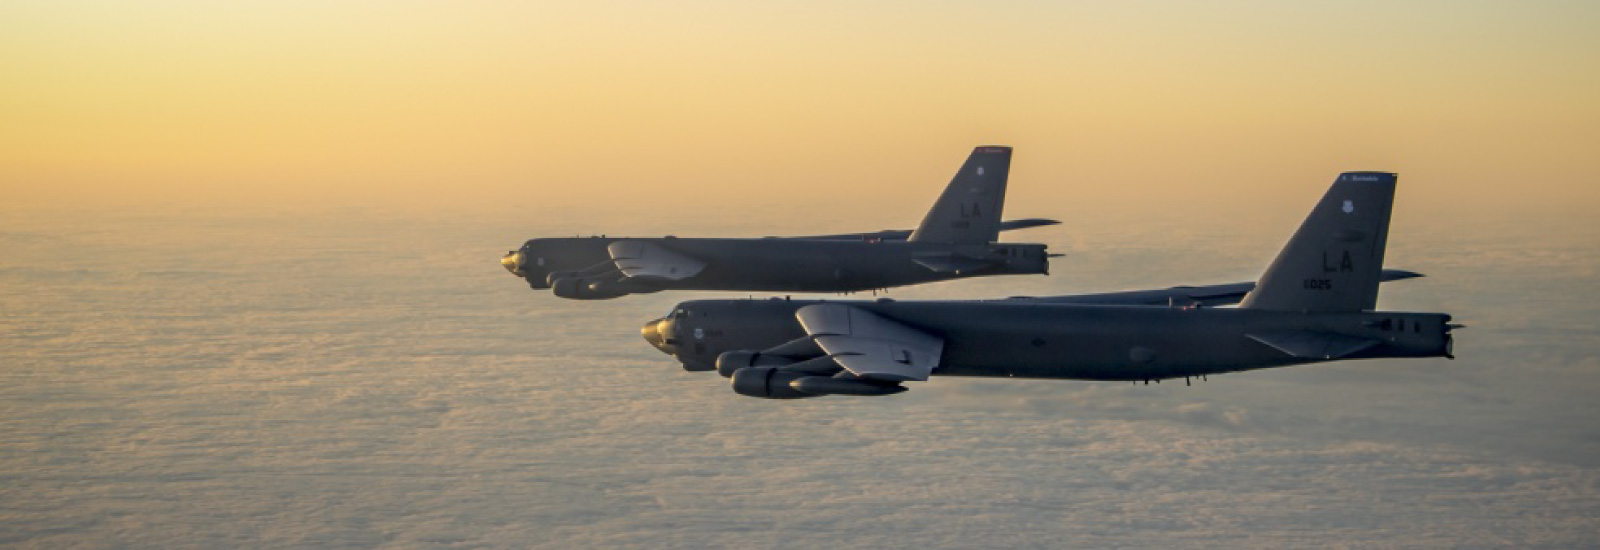 9 Reasons the B-52 Bomber is a Big Old Bada** - 3. 60-year-old Bones Dropping Bombs